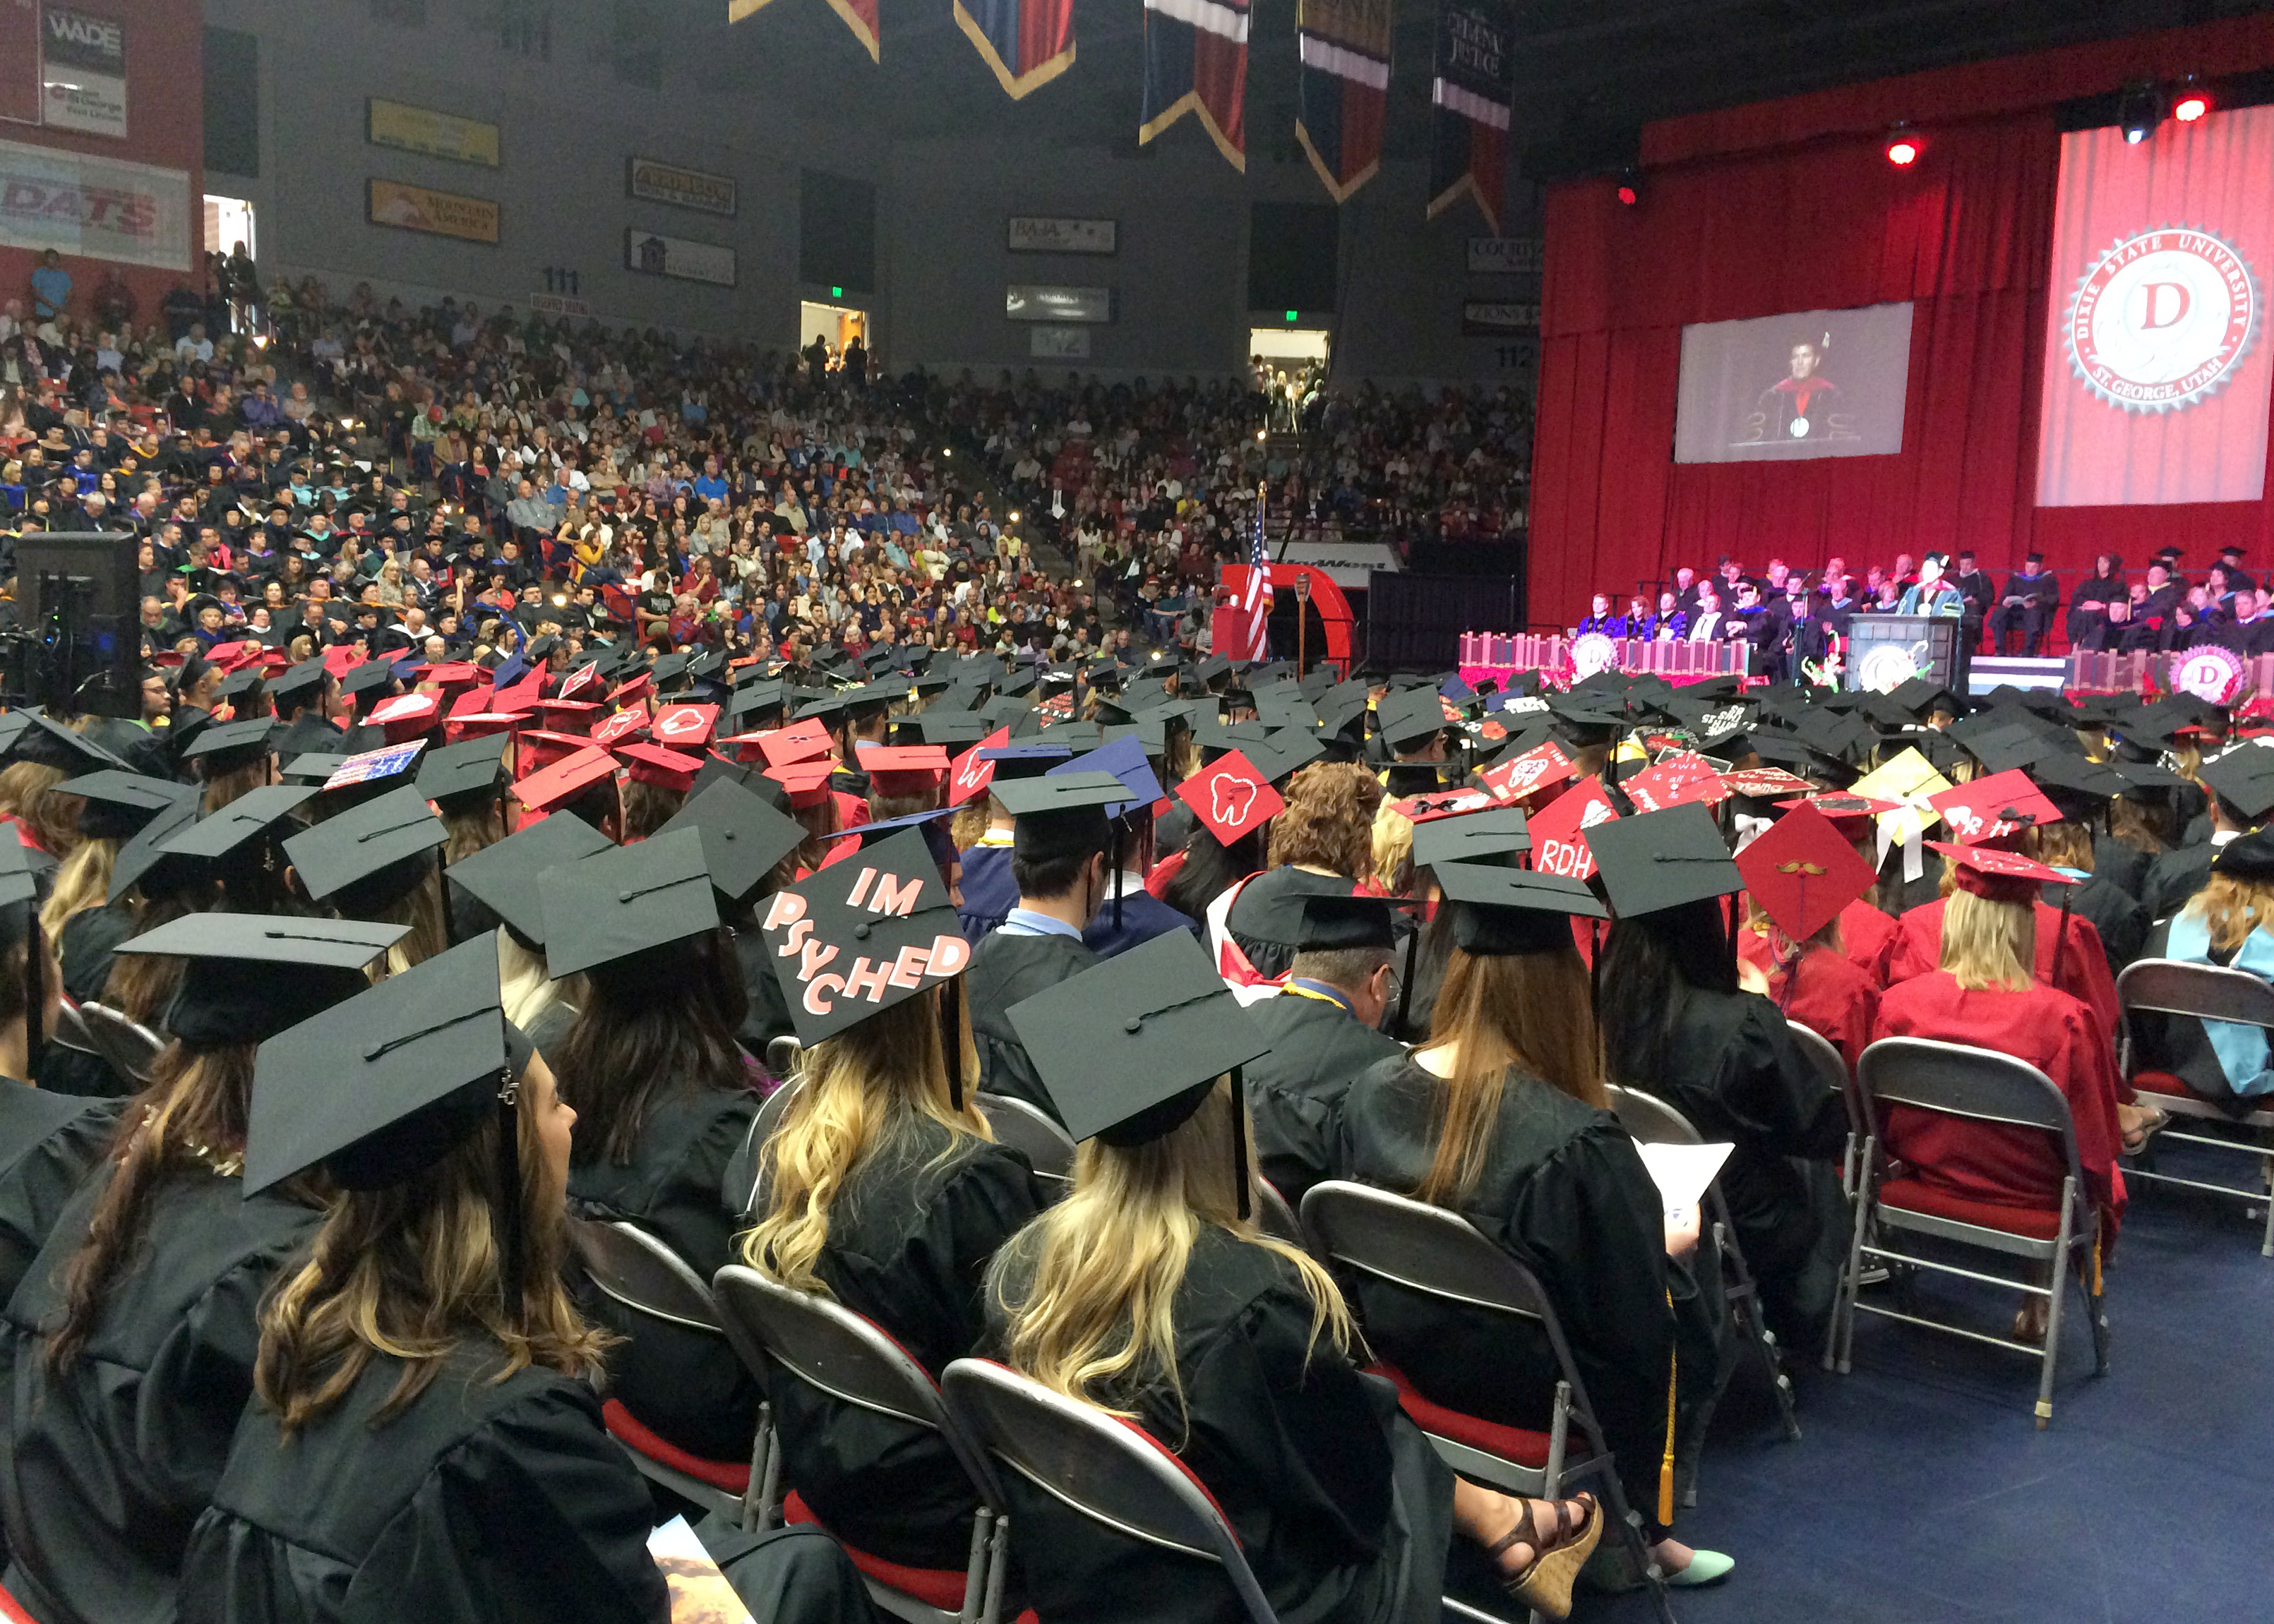 dixie state graduates consider how to impact the world